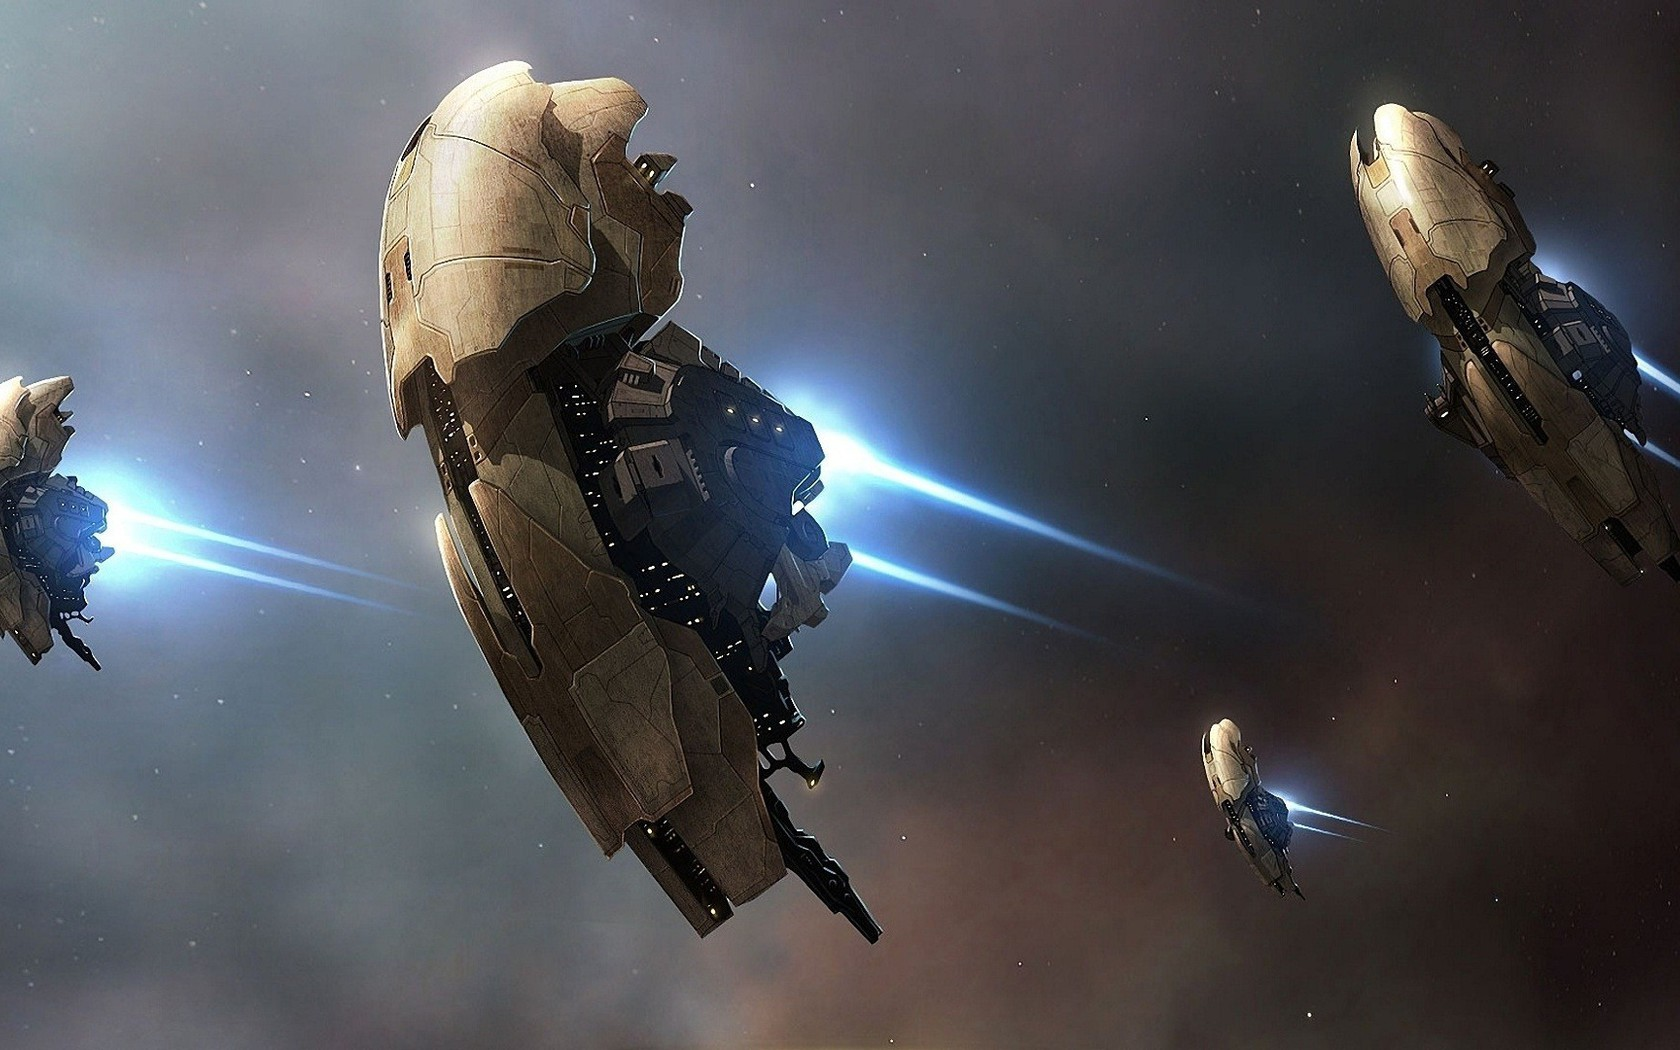 Eve Online Iphone Wallpaper: Eve Online Pc Futuristic Outer Space Games Wallpaper